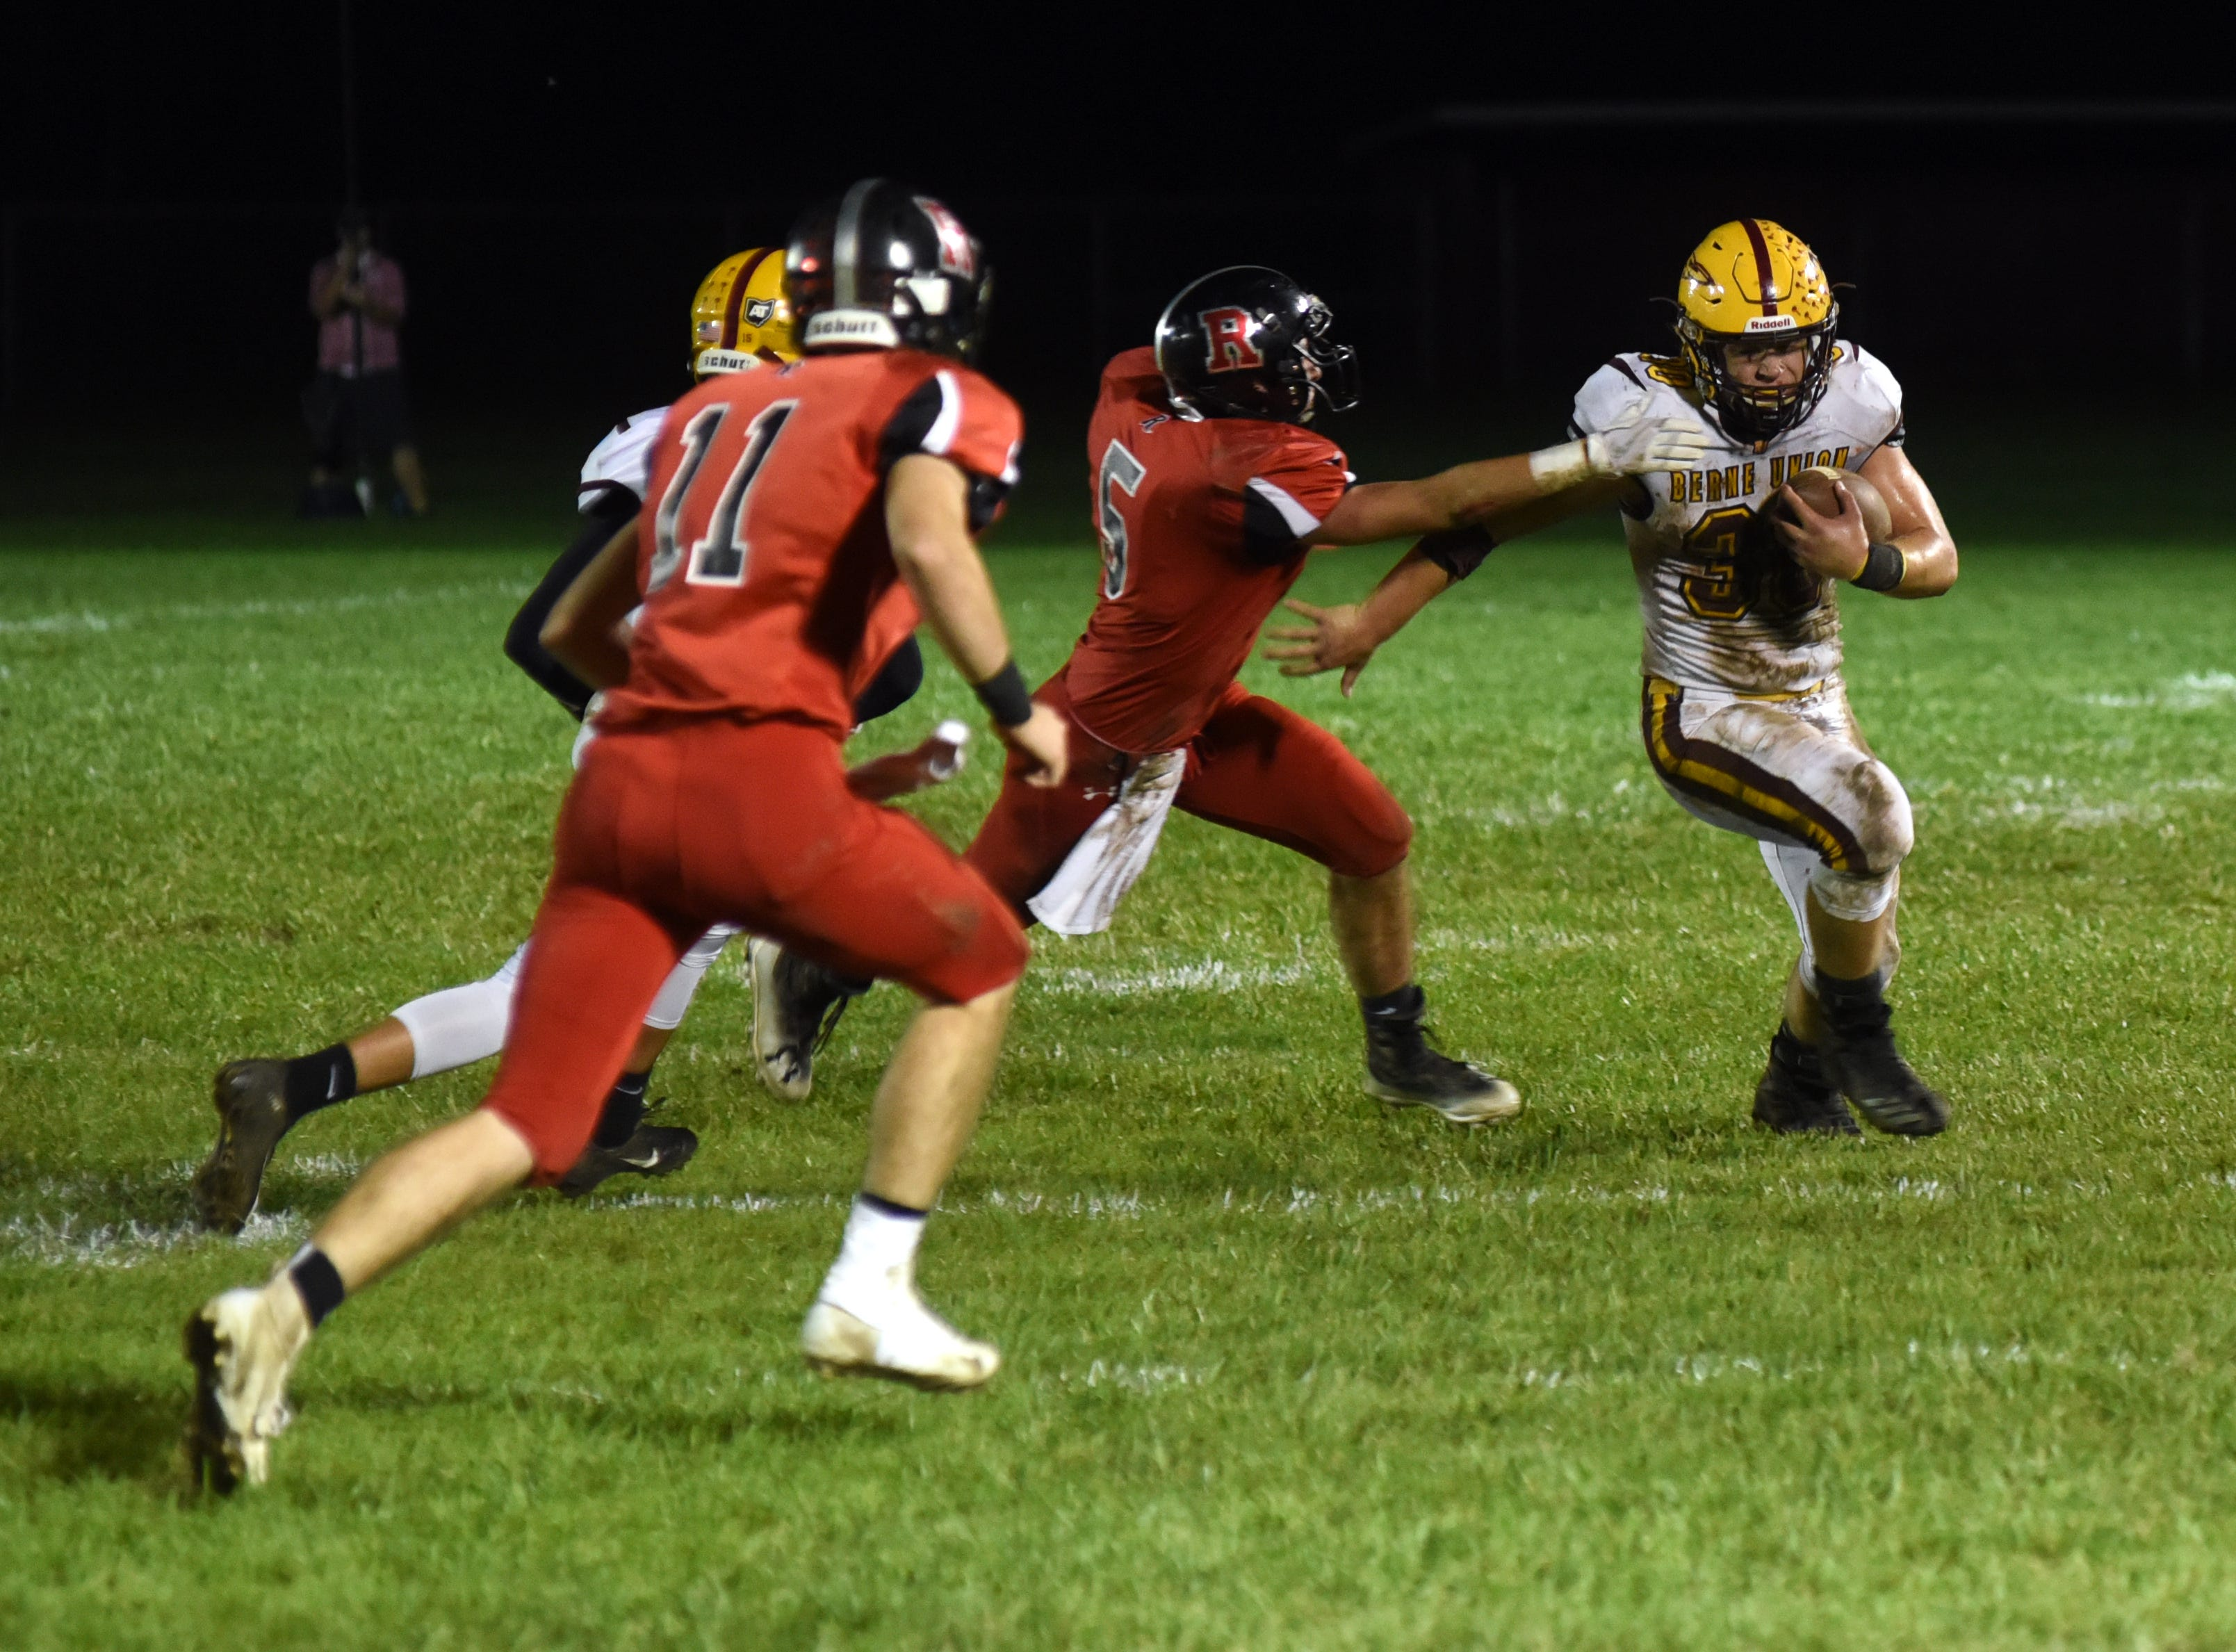 Berne Union's Chaz Dickerson tries to get past Rosecrans' Marcus Browning in Berne Union's 41-14 win on Friday.